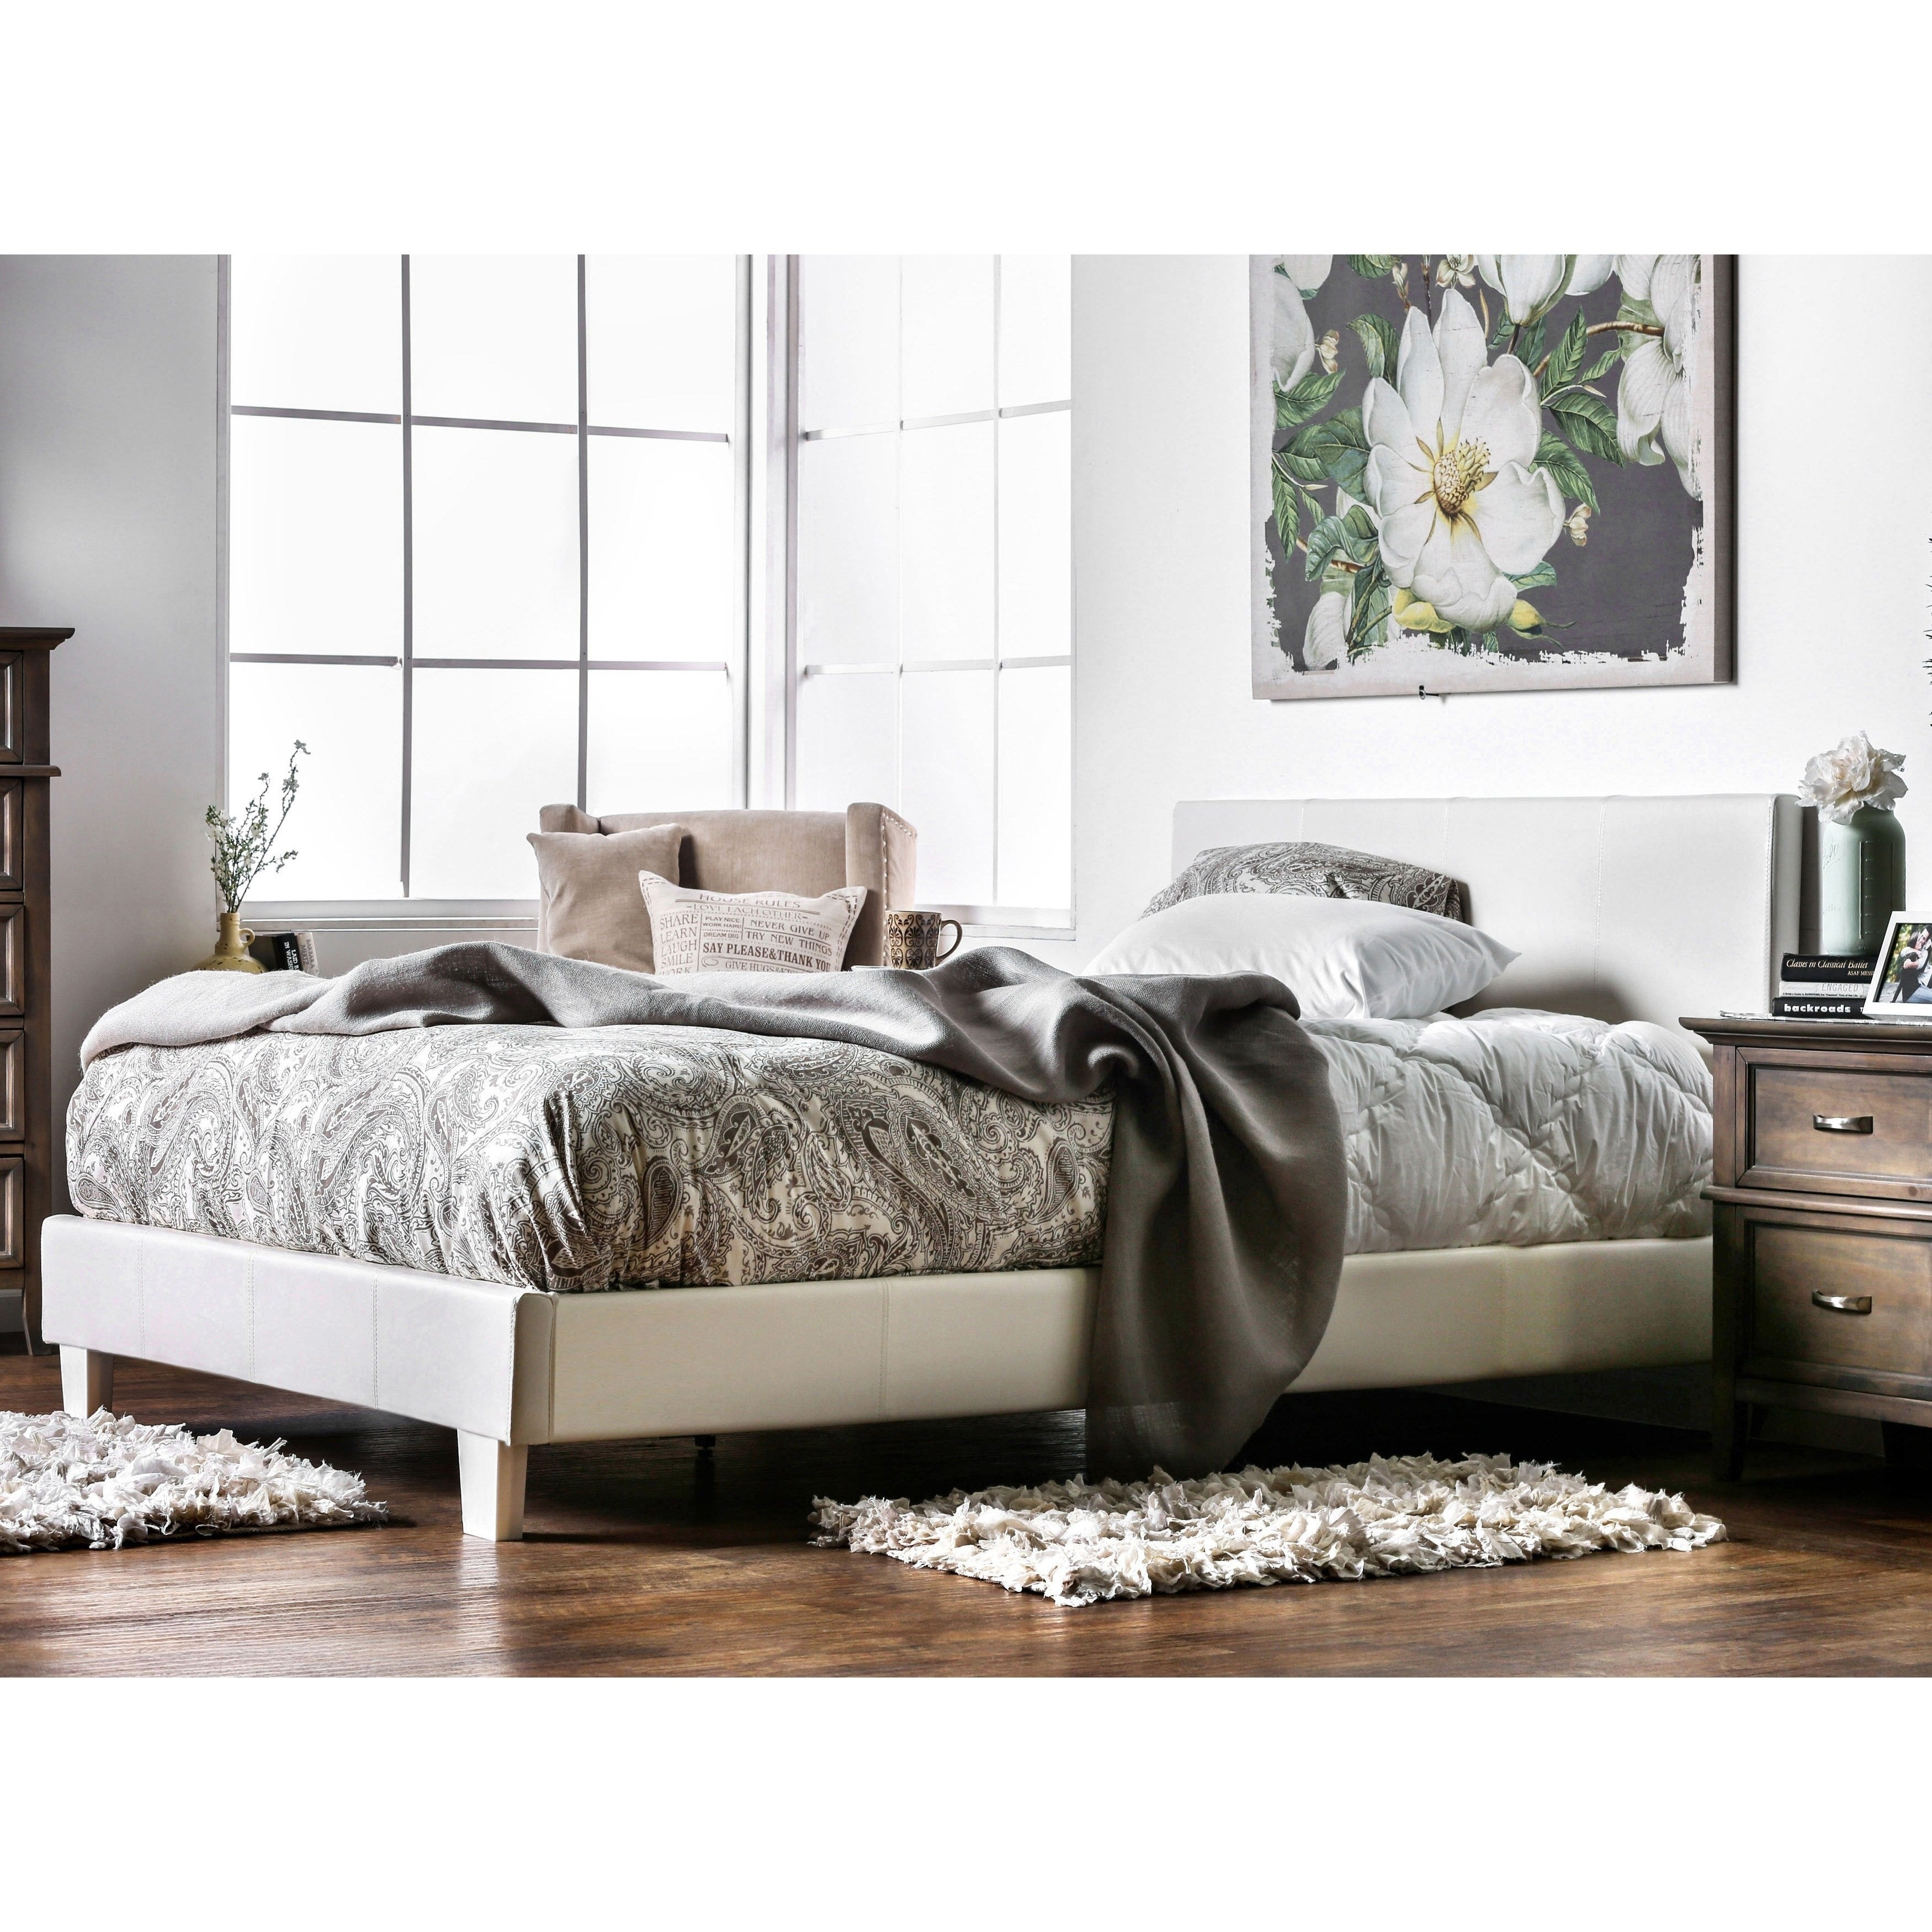 Furniture Of America Lala Modern Queen Faux Leather Platform Bed